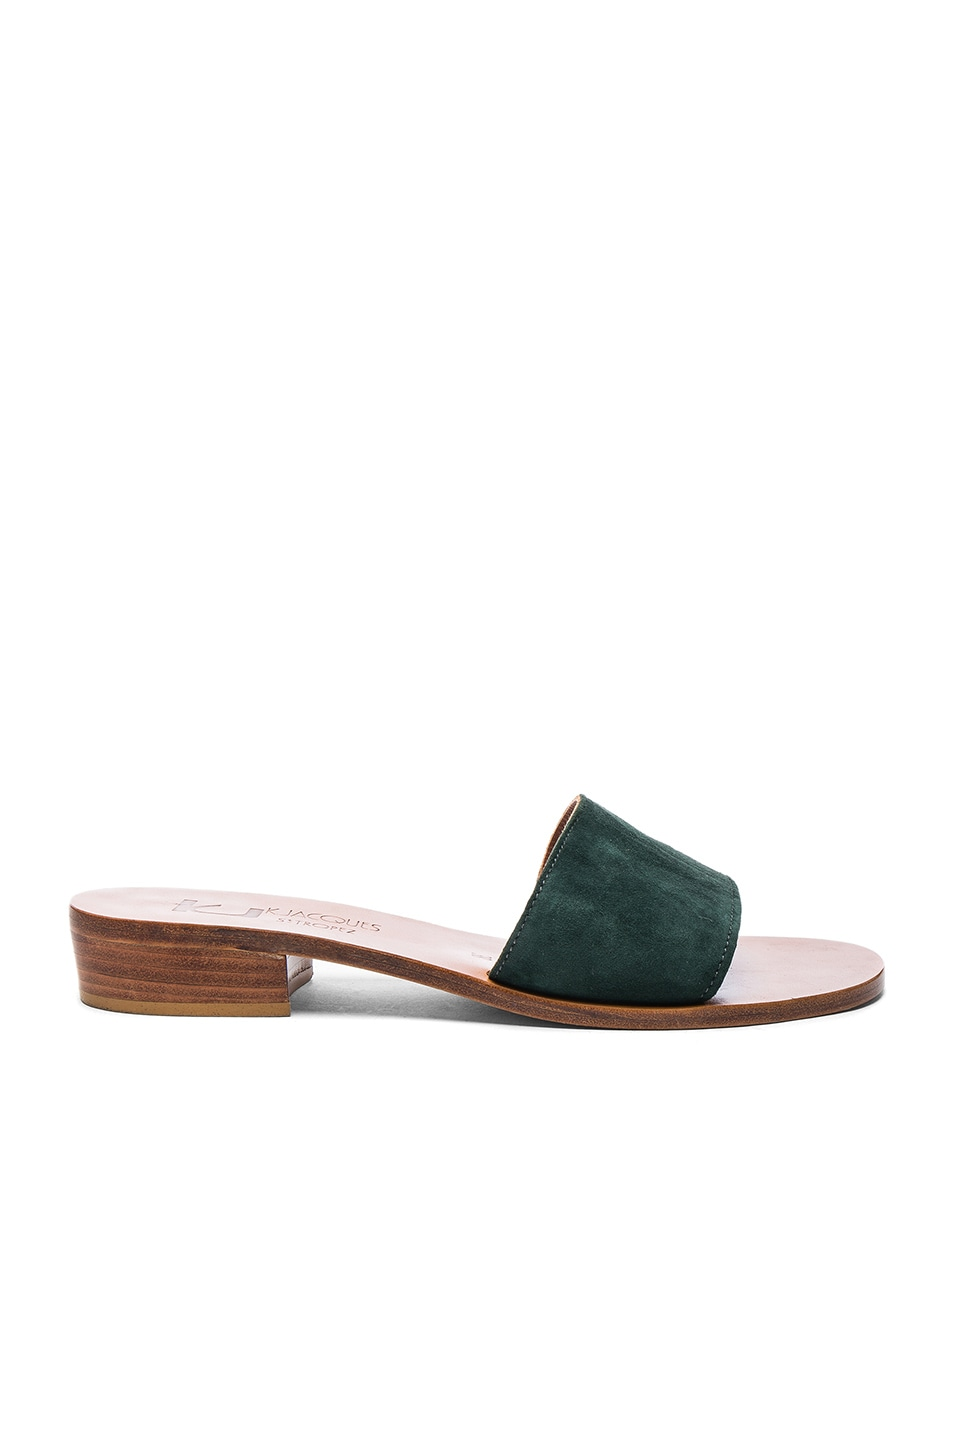 Image 1 of K Jacques Suede Sevan Sandals in Velours Grama